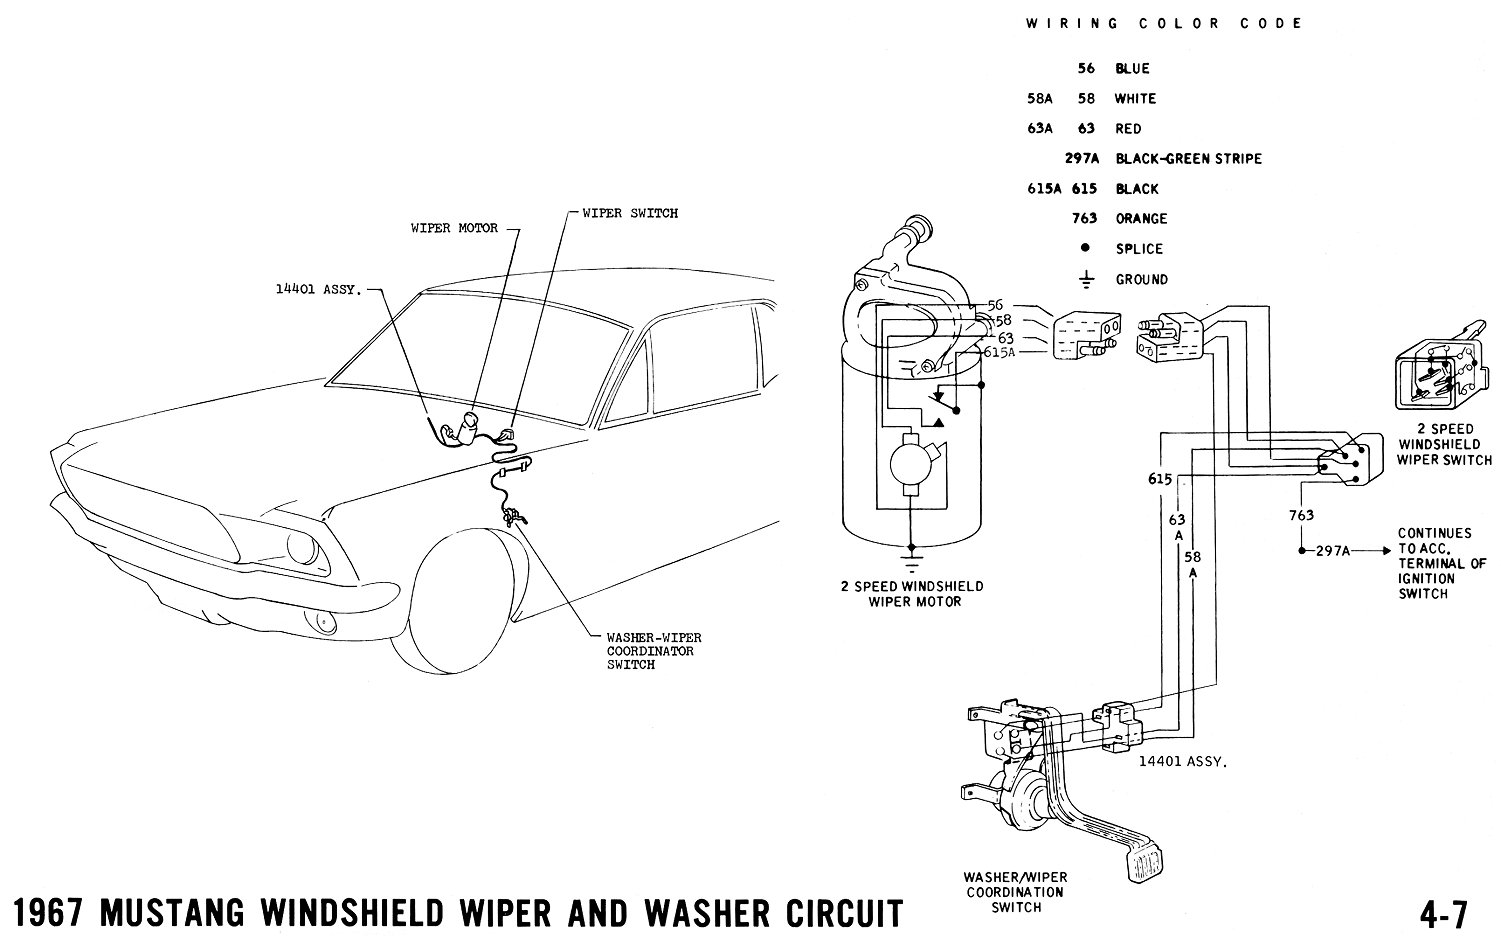 1967 Mustang Wipers. Pictorial and Schematic